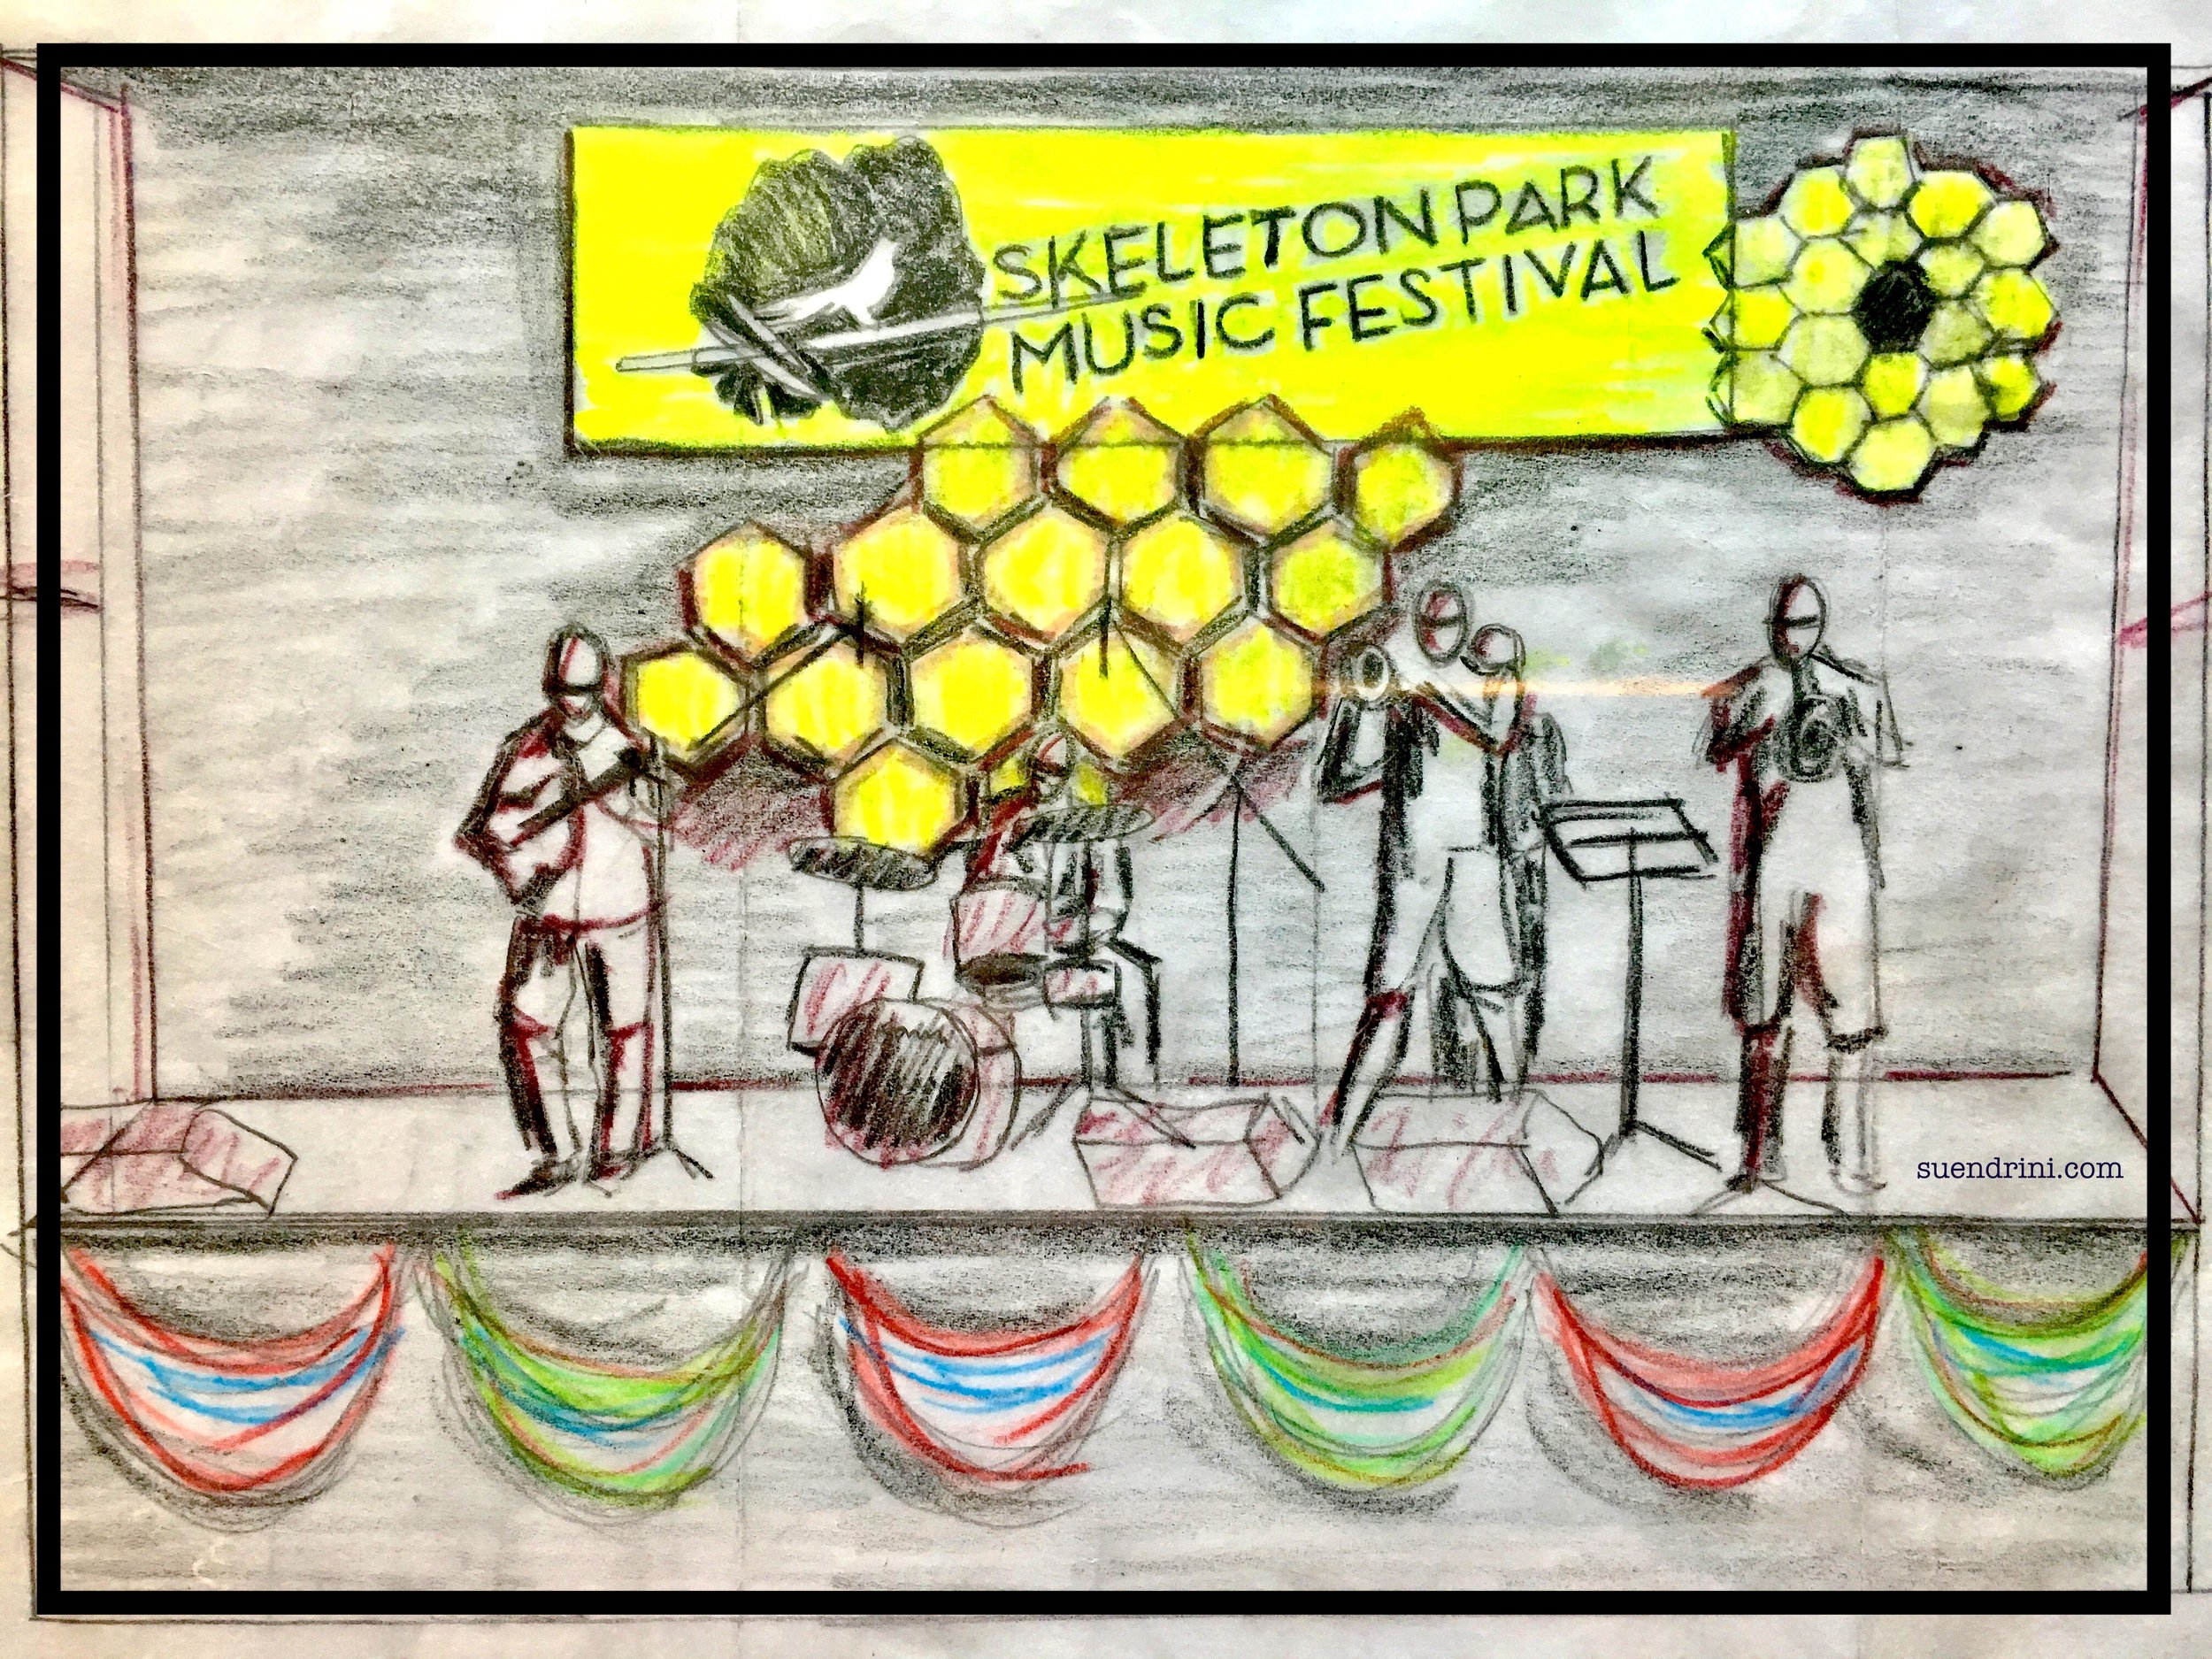 Long View Wonder - Visualizing the importance of Science & NatureImage: reconfigured concept sketch of stage art to suit the SPAF 2017 stage, Skeleton Park Arts Fest 2017, Kingston, OntarioUp cycled Medium: discontinued commercial textileDimensions: 20 feet x 8 feet23-25 June 2017Good Public Reference:EcojusticePollinator Canada